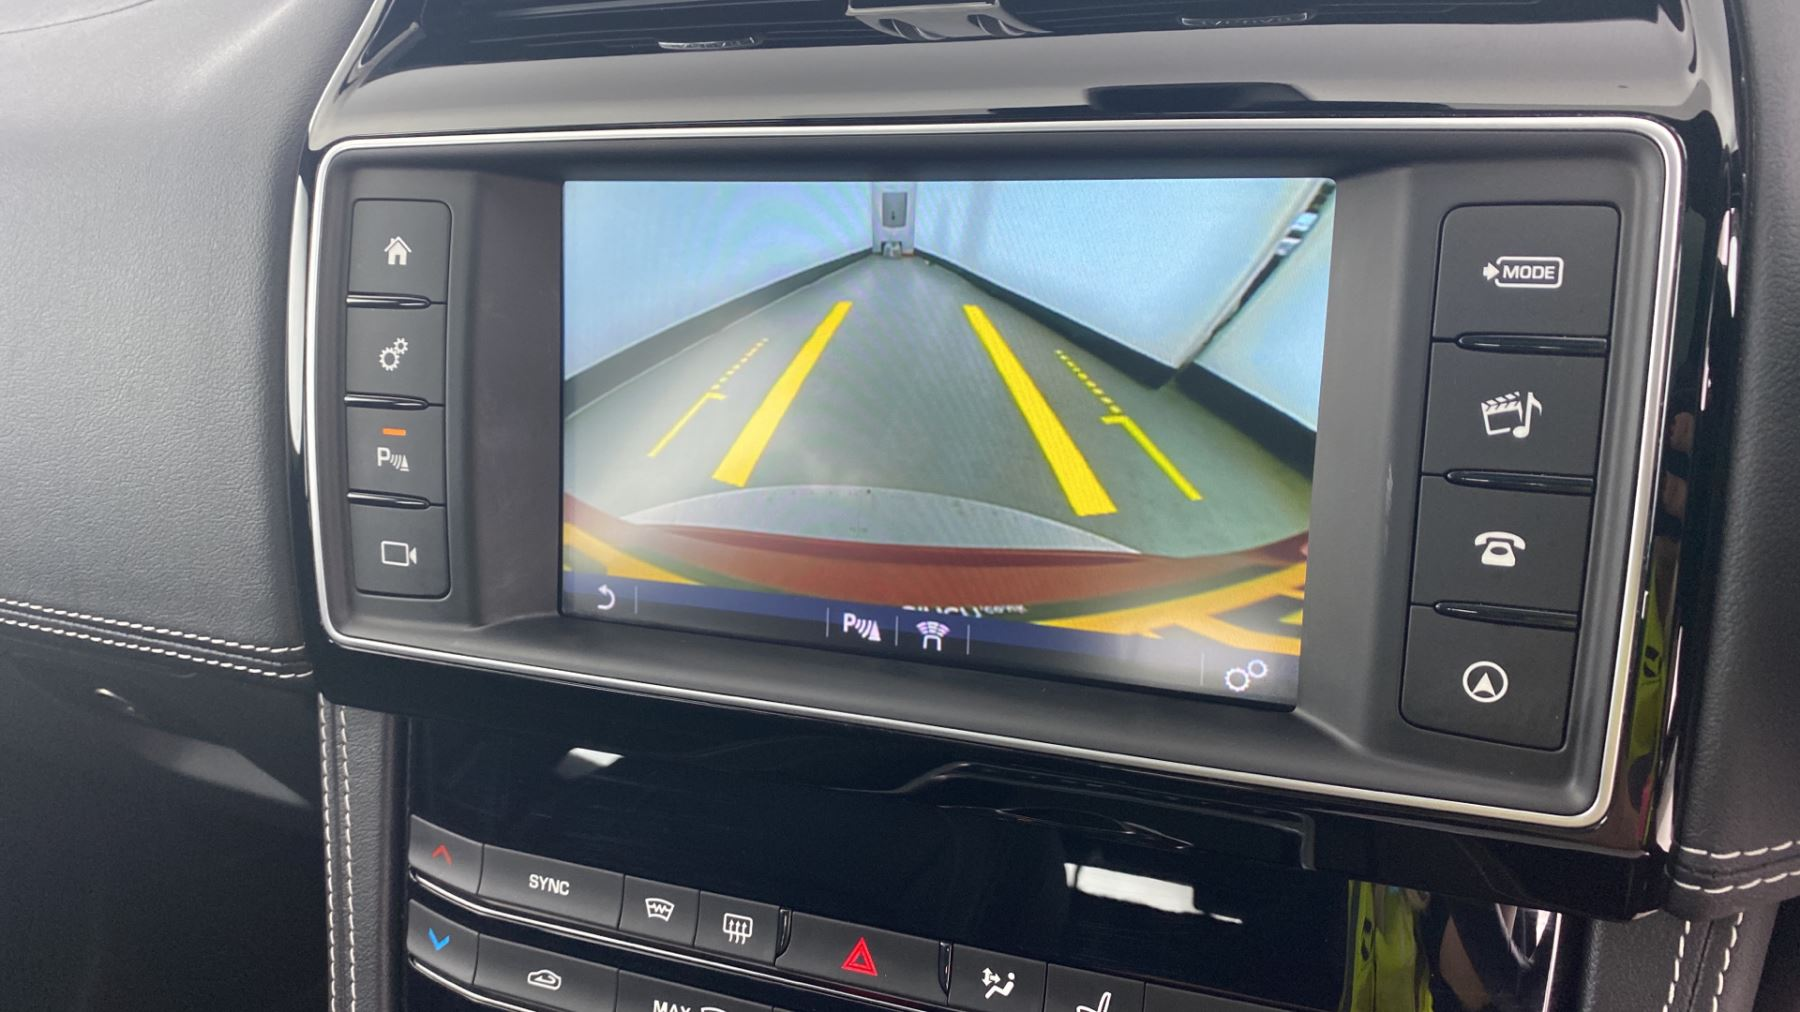 Jaguar F-PACE 2.0d R-Sport AWD - Sliding Panoramic Roof - Rear View Camera image 23